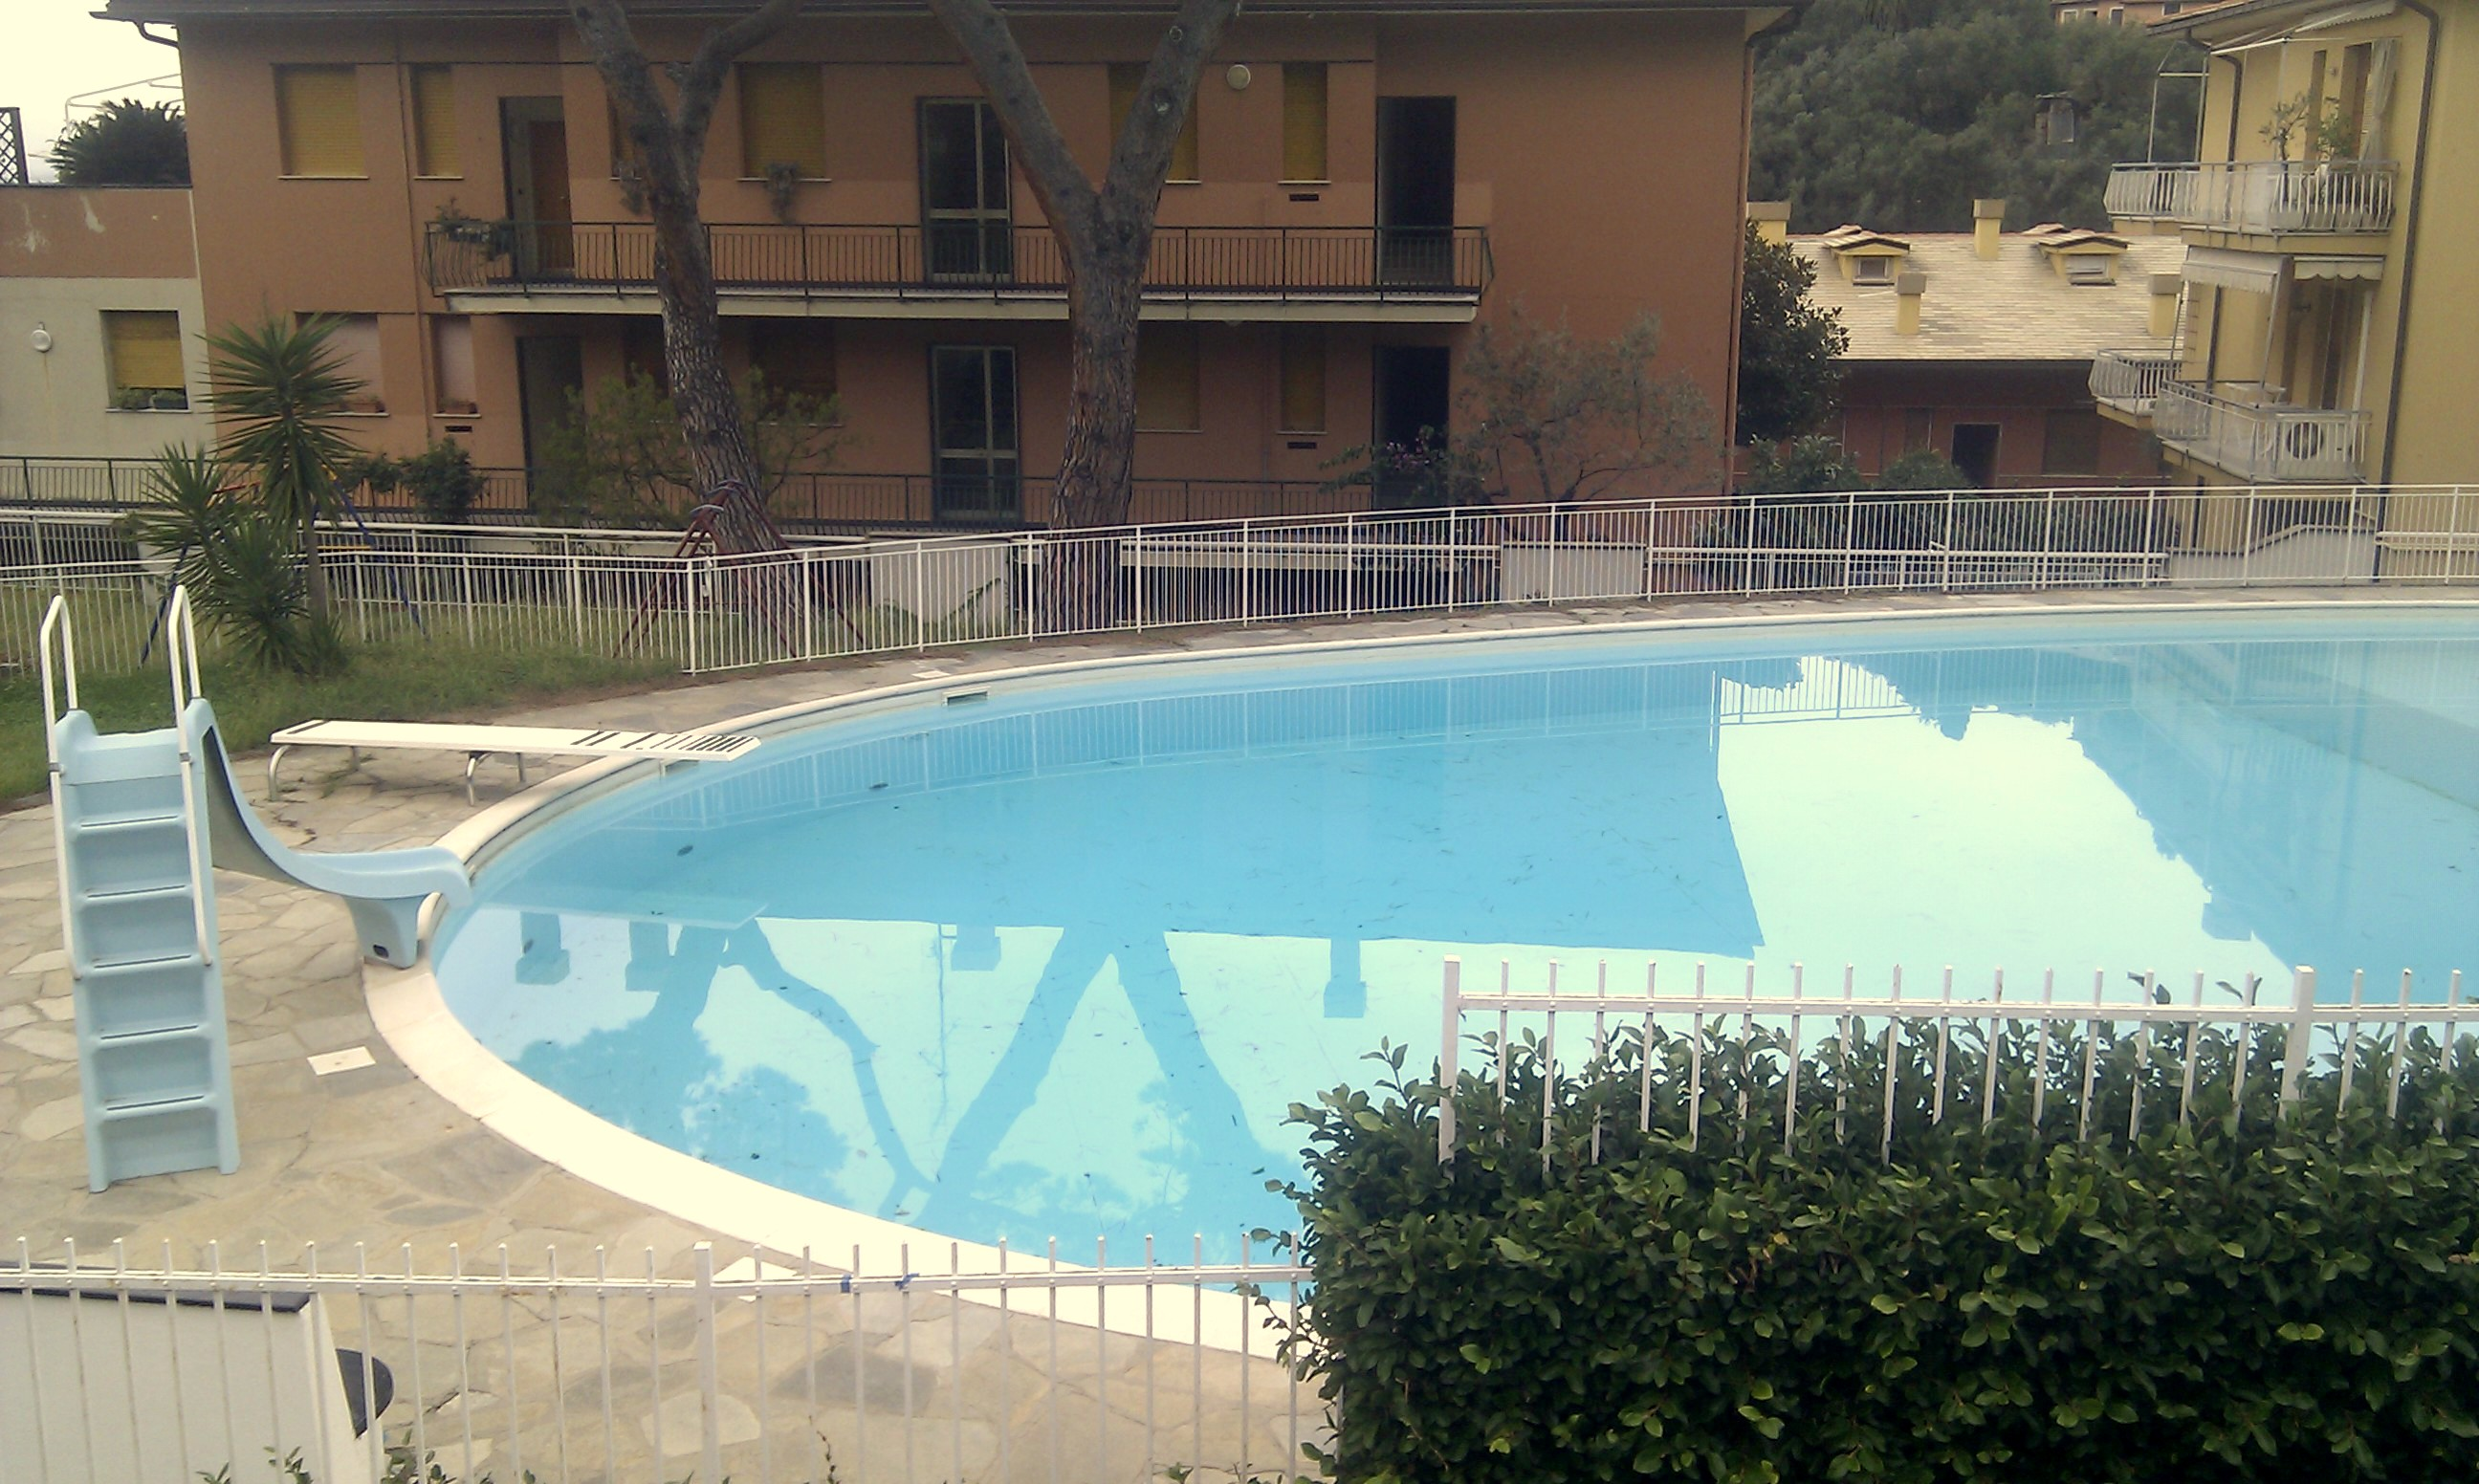 Easyapartmentrental Seaview Apartment With Swimming Pool